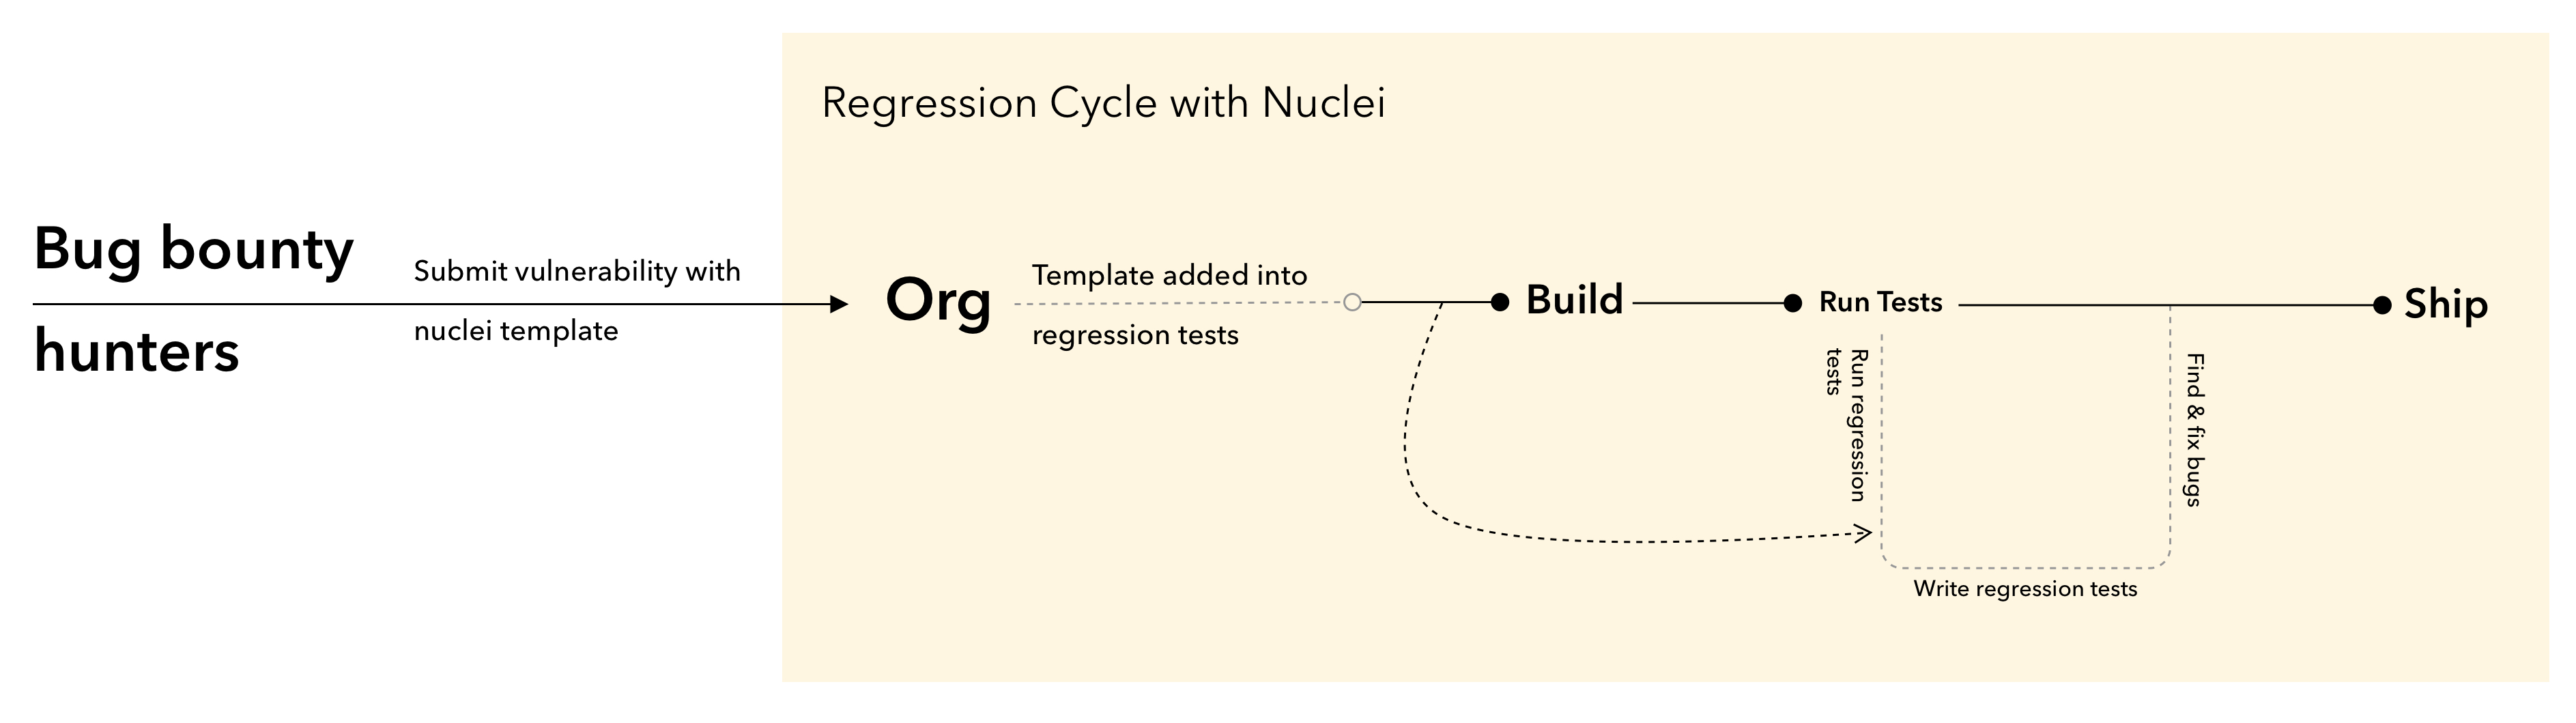 regression-cycle-with-nuclei